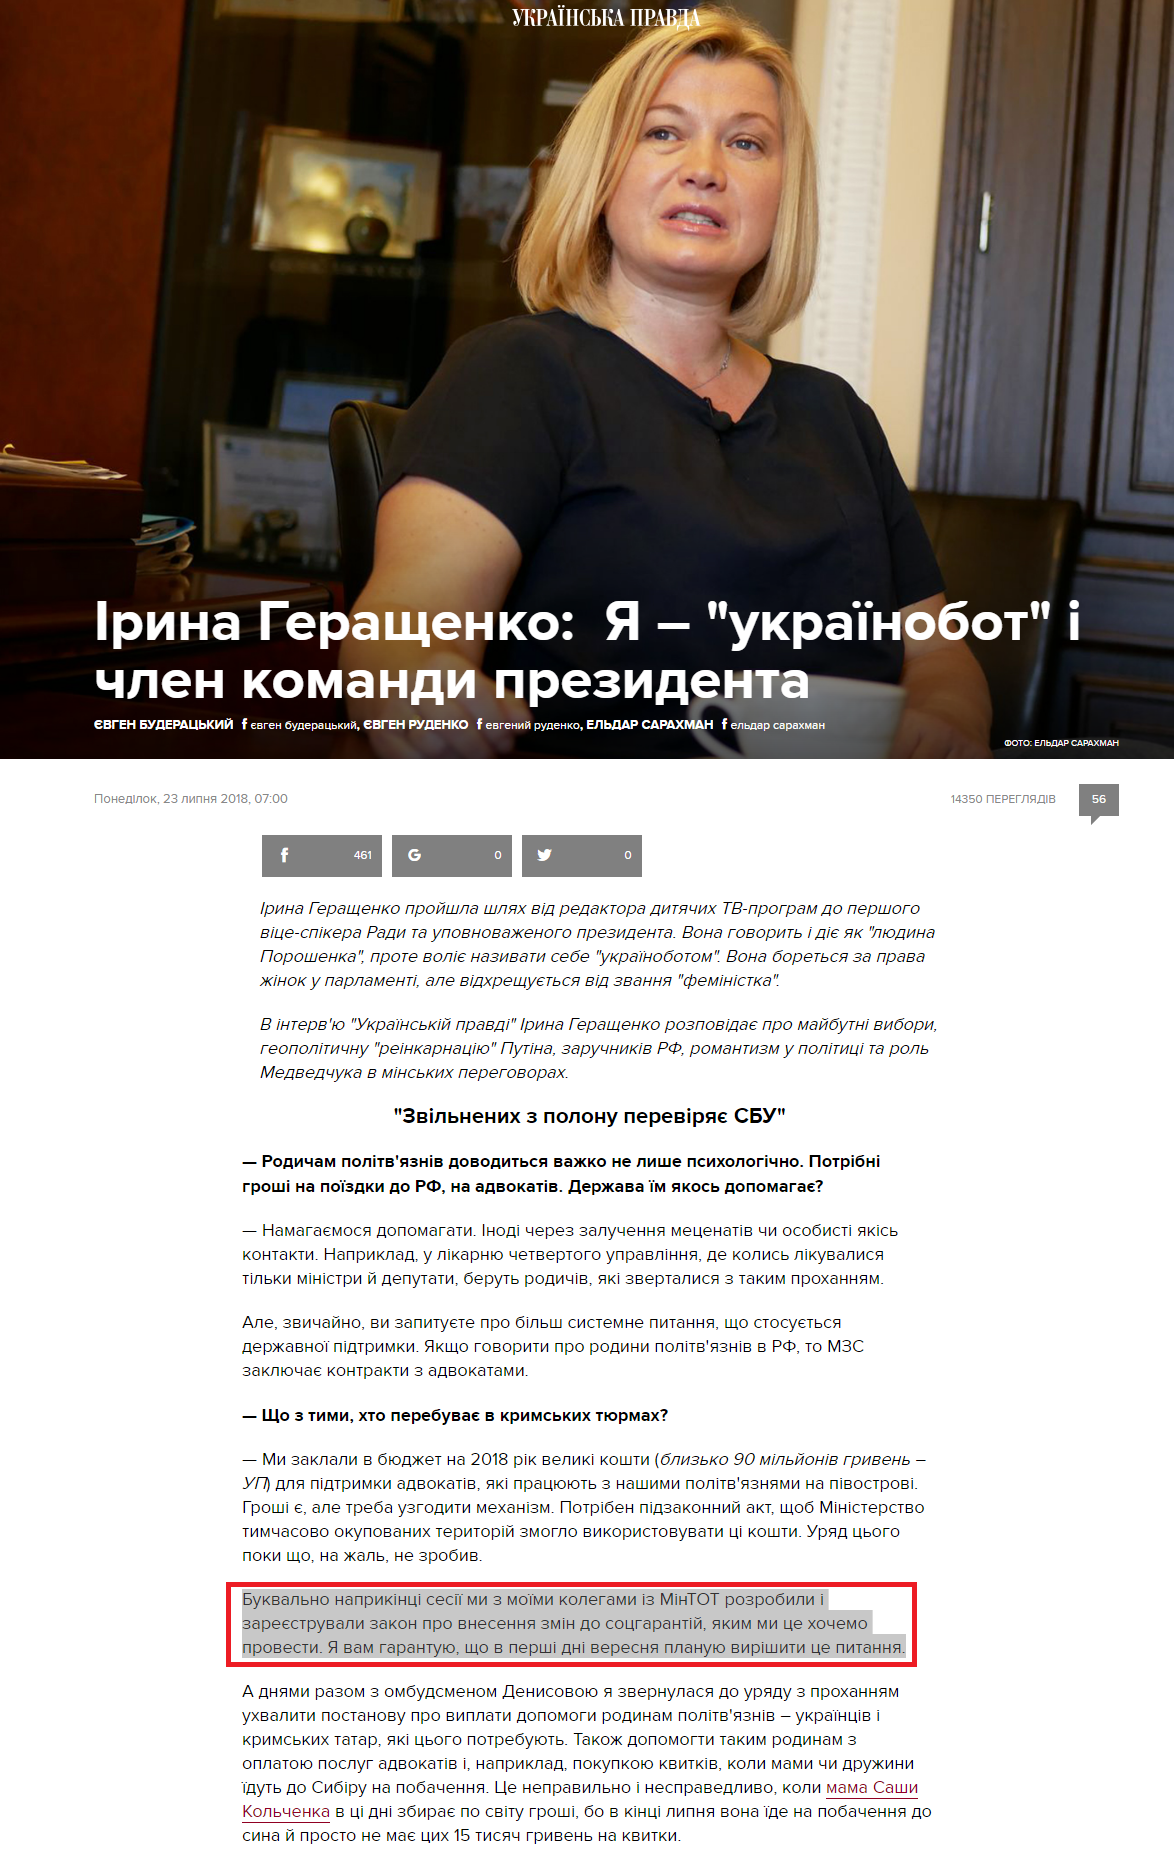 https://www.pravda.com.ua/articles/2018/07/23/7187056/